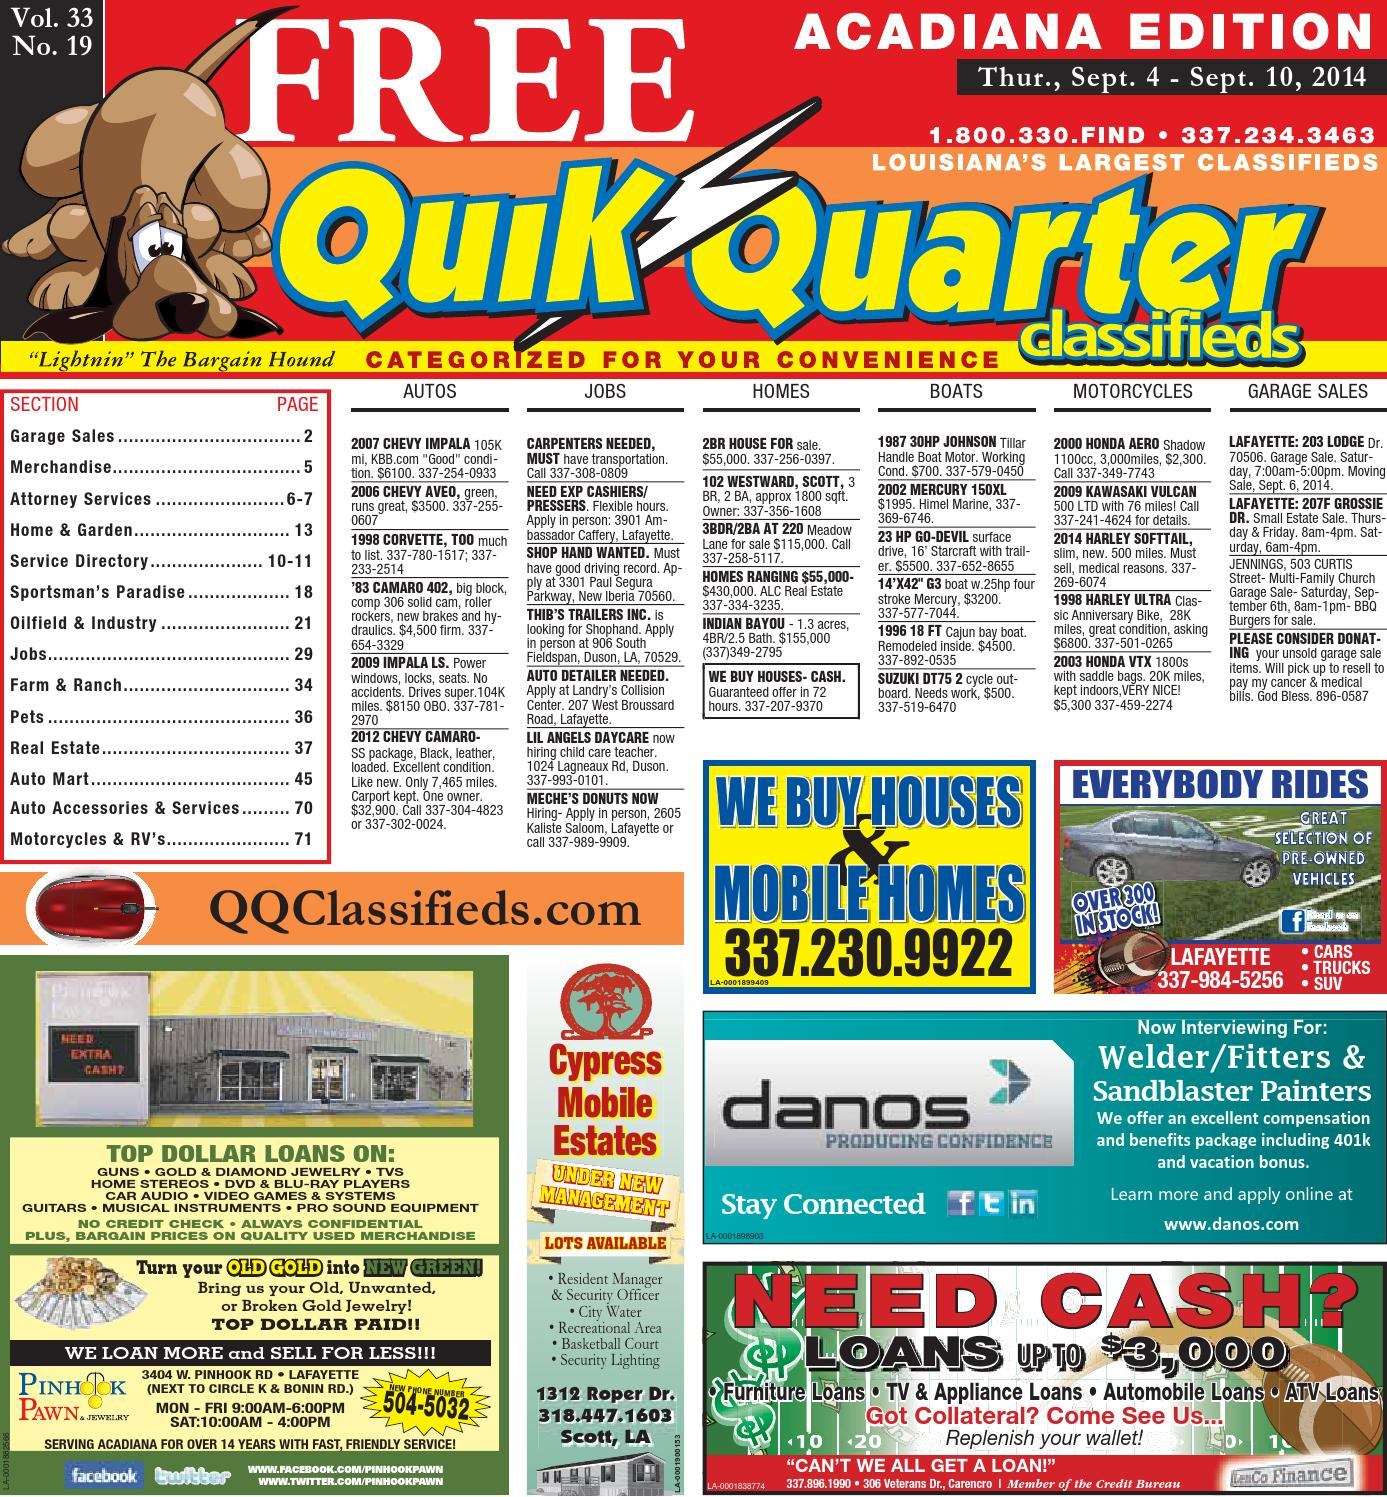 QQAcadiana-09 04 2014 by Part of the USA TODAY NETWORK - issuu